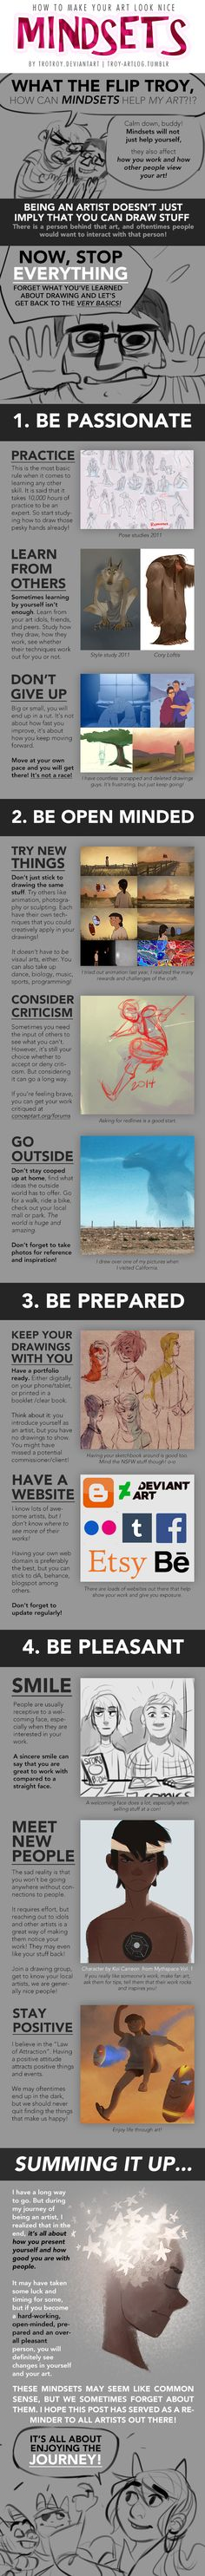 HOW TO MAKE YOUR ART LOOK NICE: Mindsets by trisketched on DeviantArt